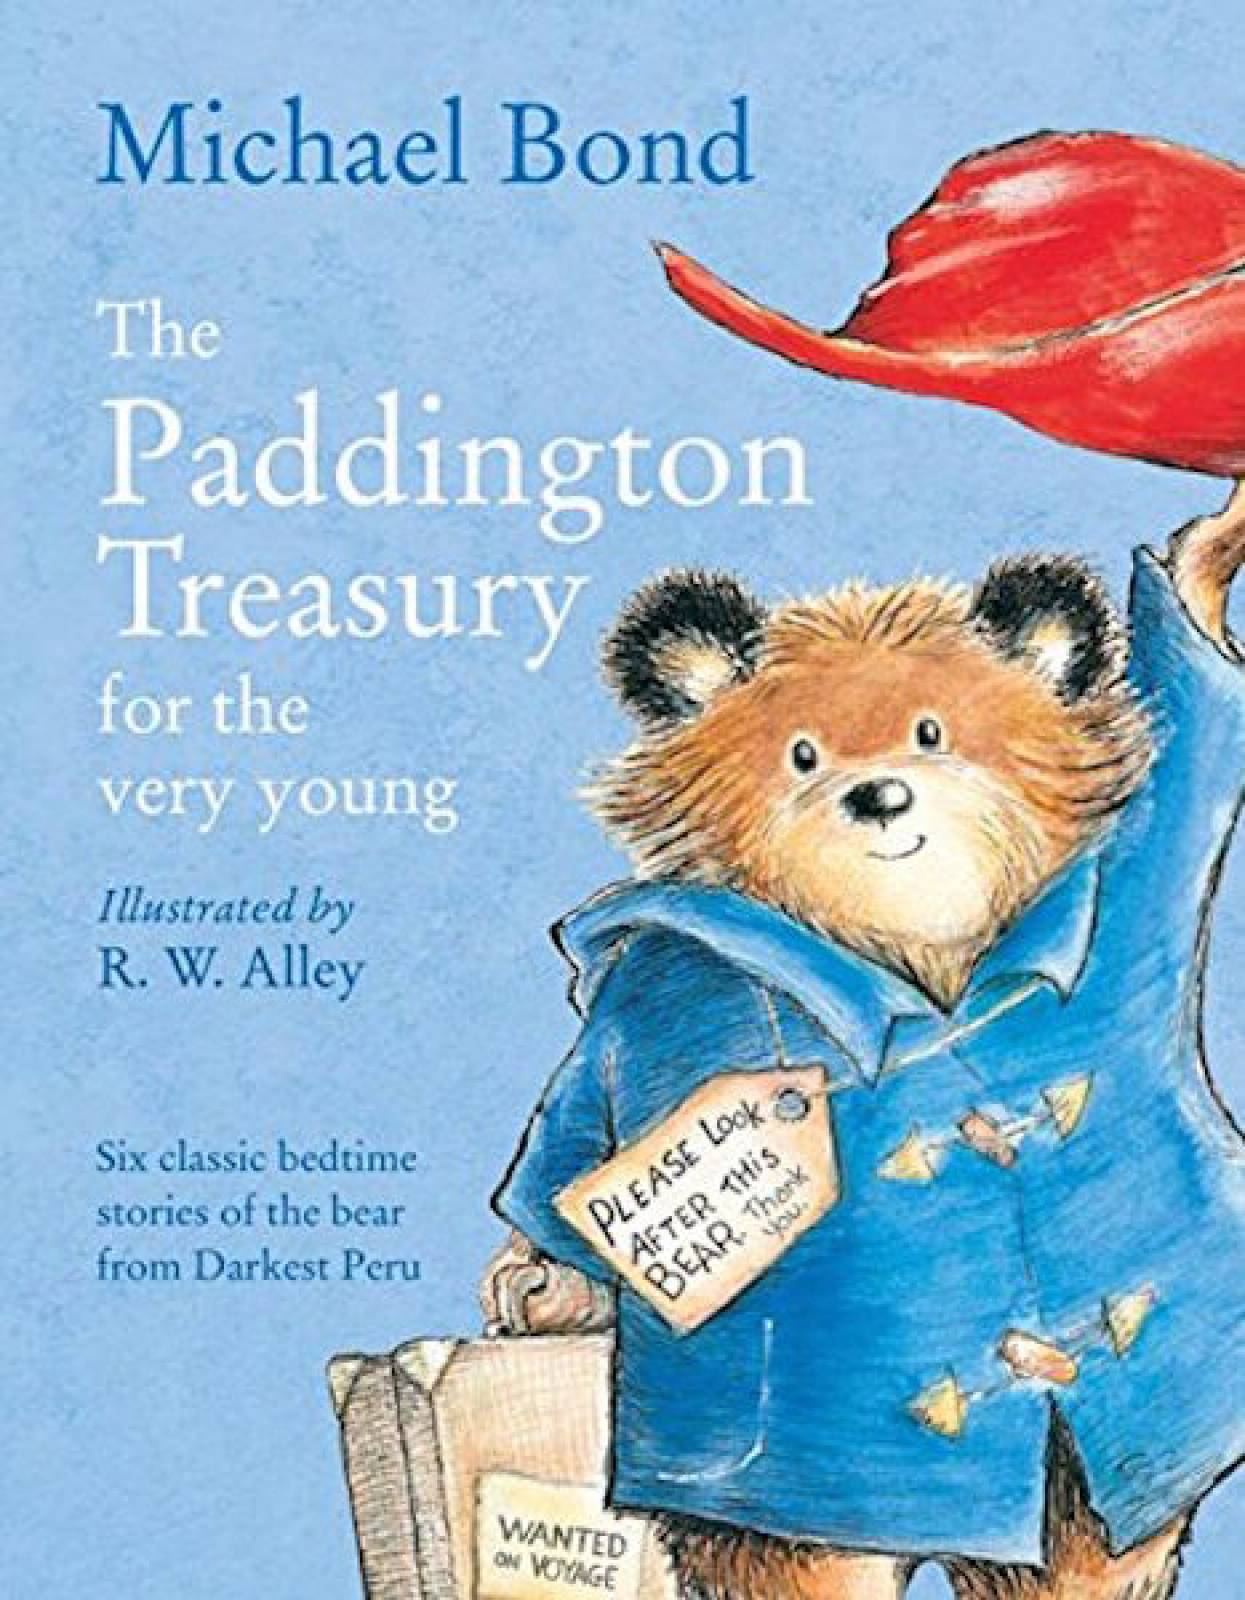 The Paddington Treasury For The Very Young Hardback Book thumbnails